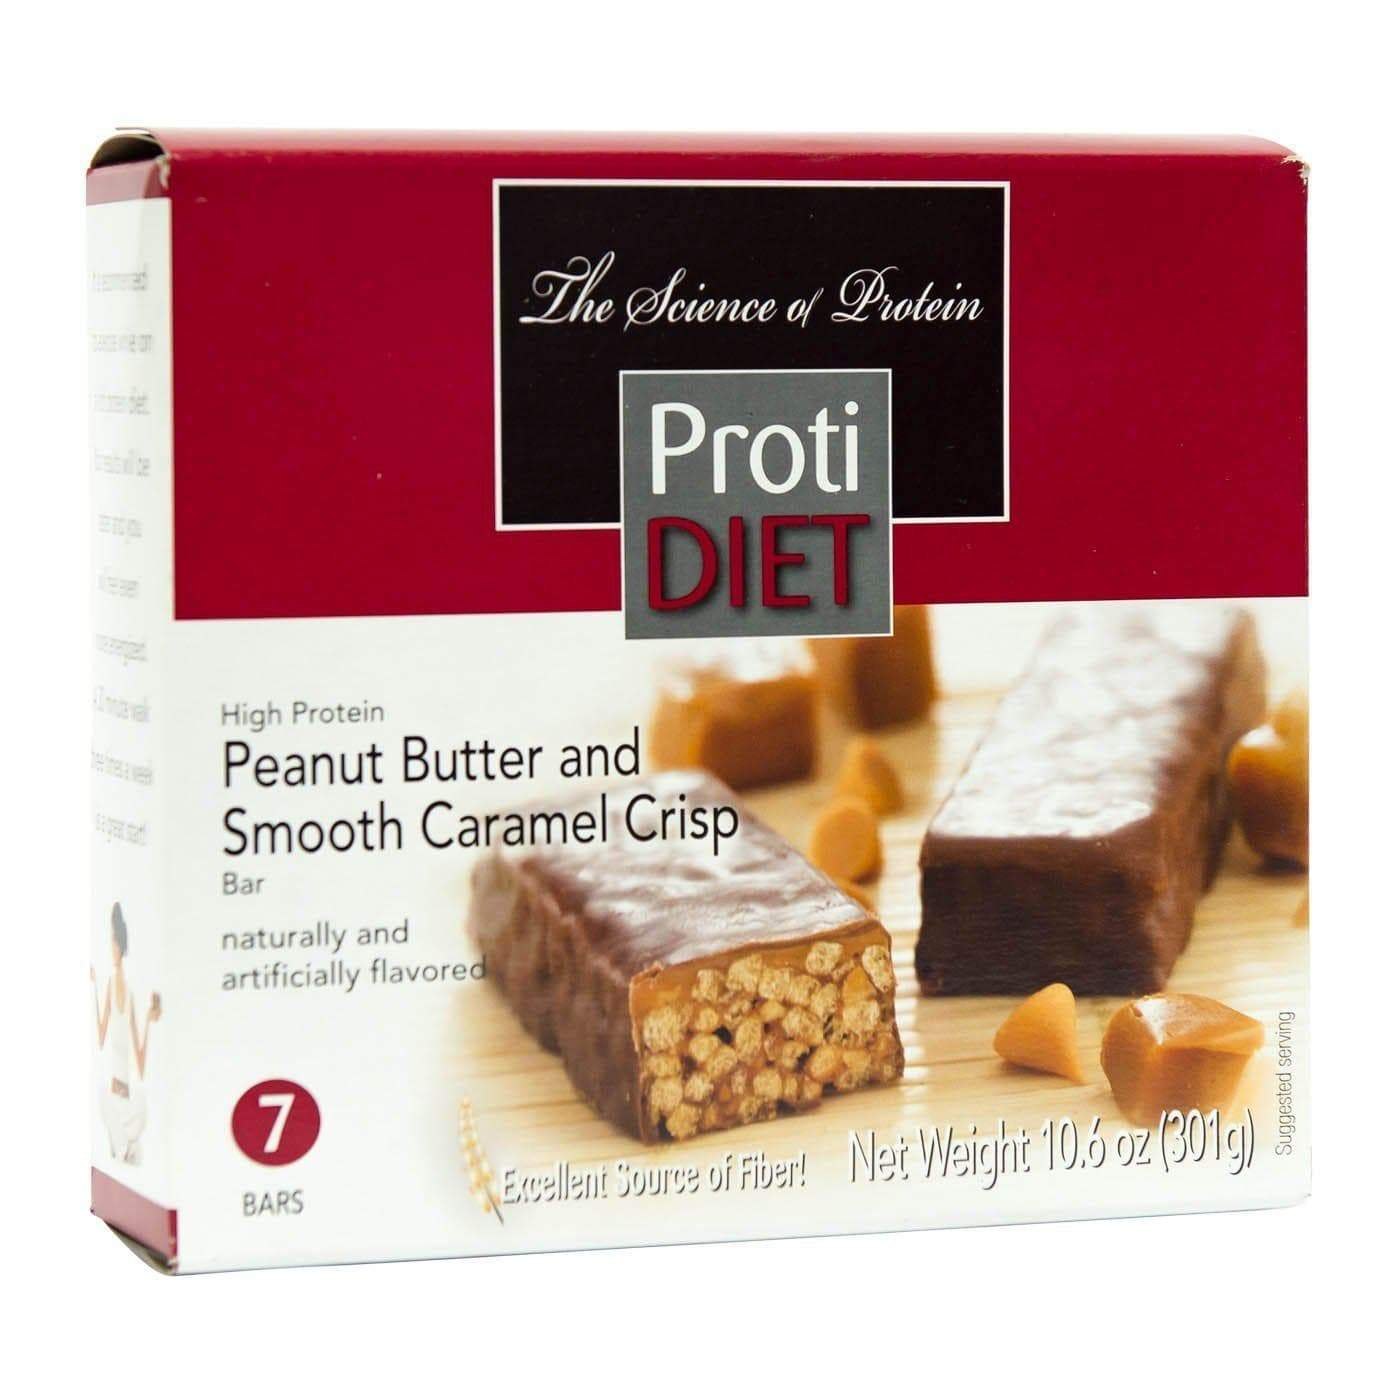 Protidiet Protein Bar Peanut Butter And Smooth Caramel Crisp 7 Box Ideal Protein Alternatives Low Carb Snack Bars Meal Replacement Bars